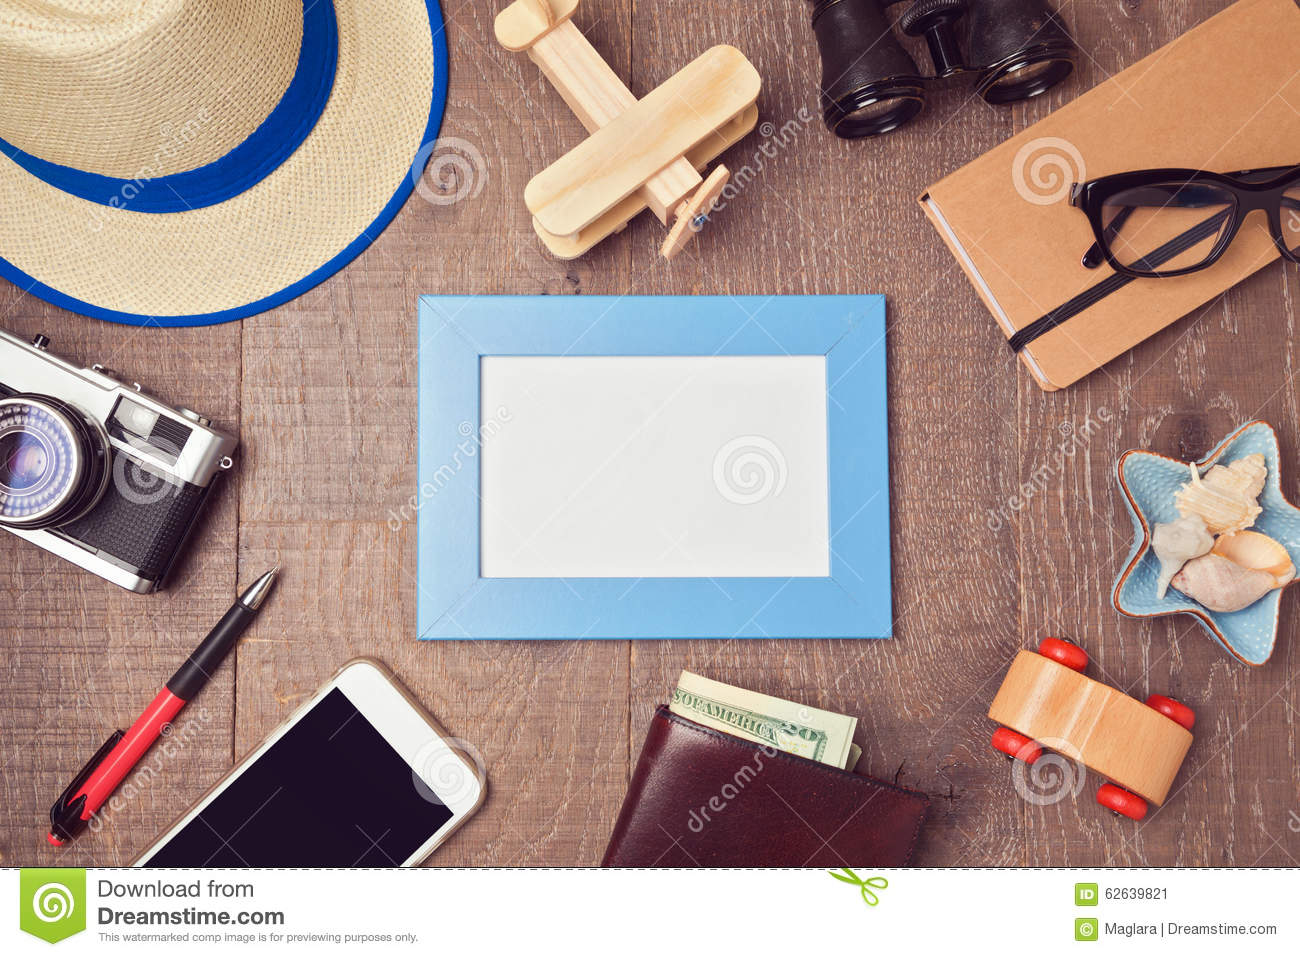 Travel and vacation concept background with blank frame and objects. View from above